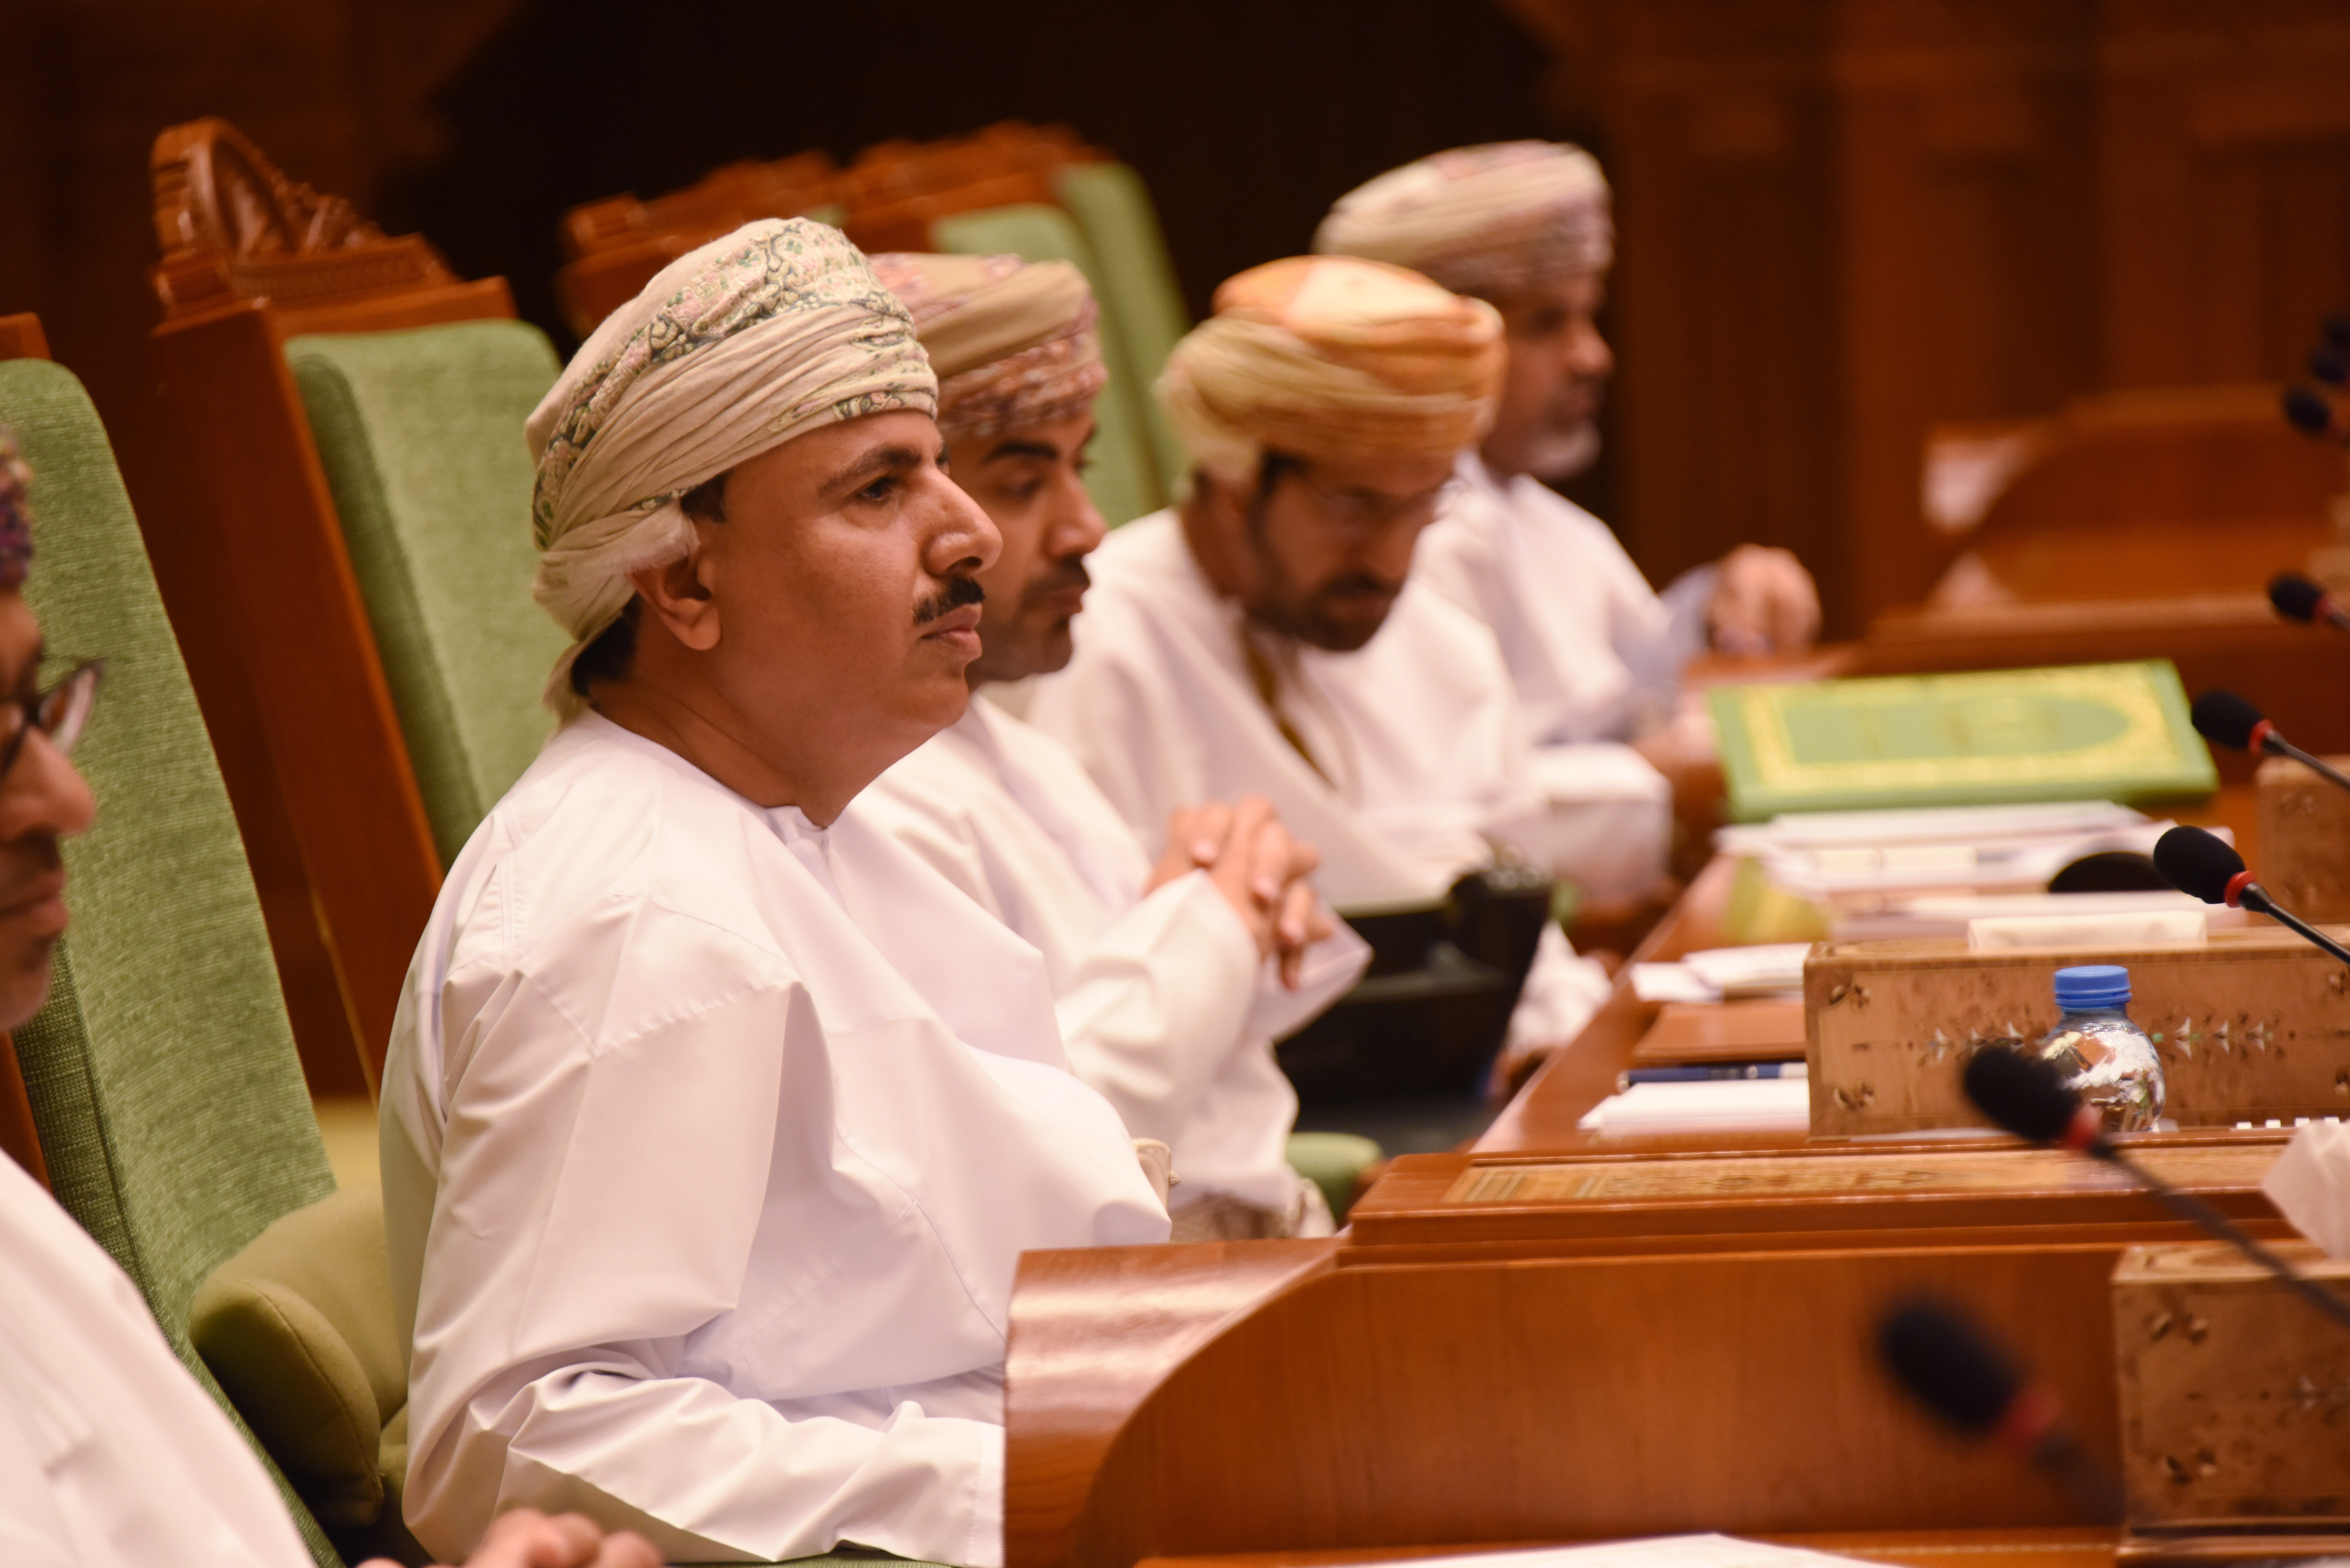 Minister of Manpower backs 2-year visa ban in Oman